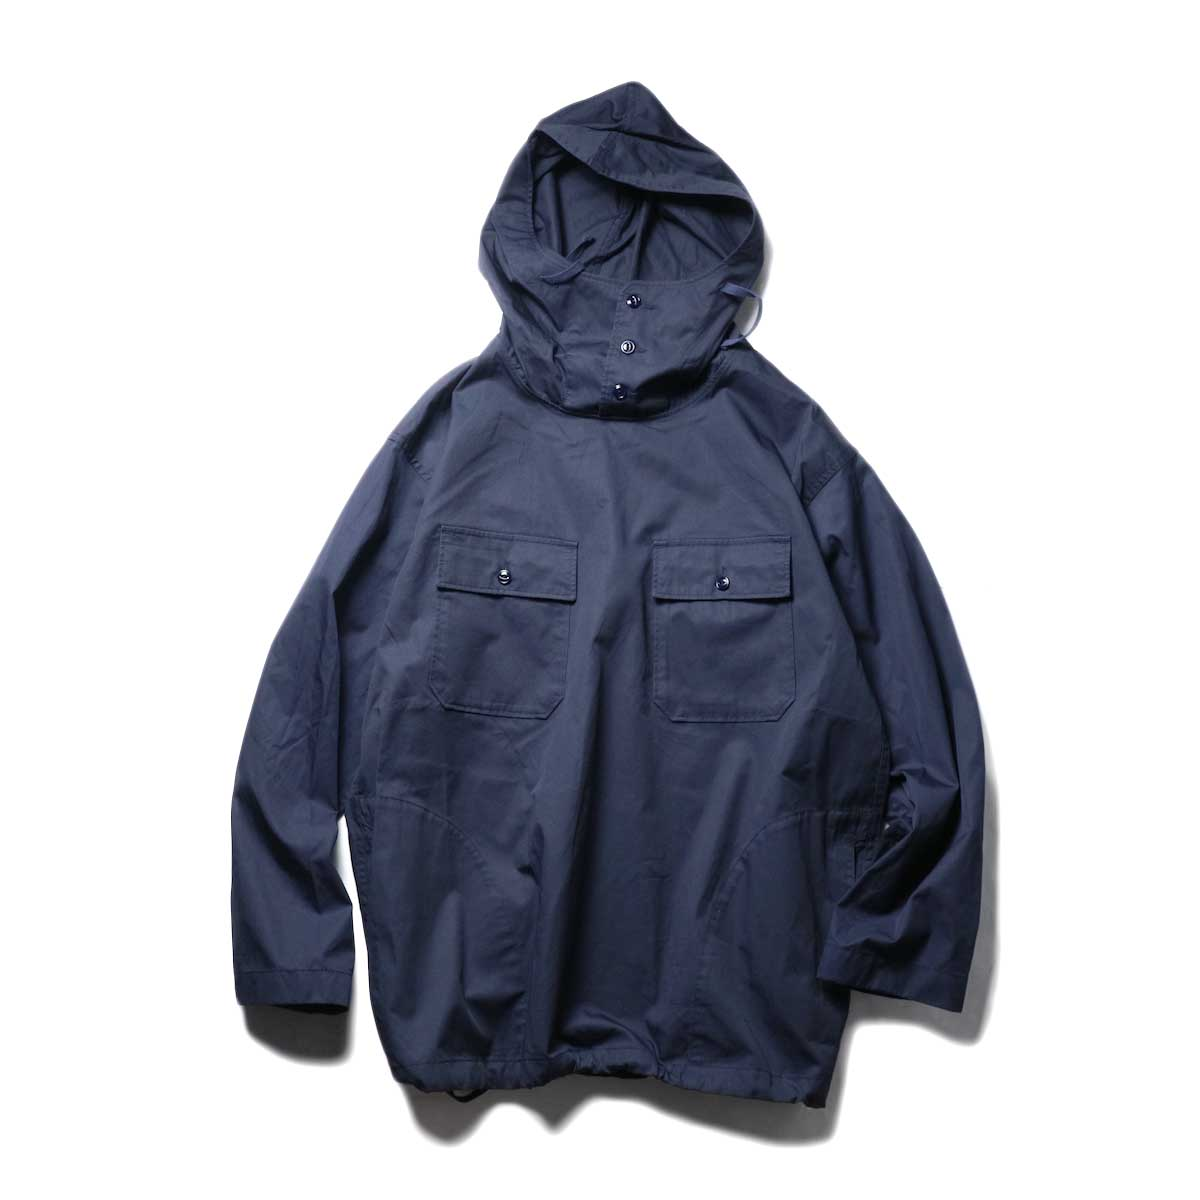 Engineered Garments / Cagoule Shirt -High Count Twill (Dk.Navy)